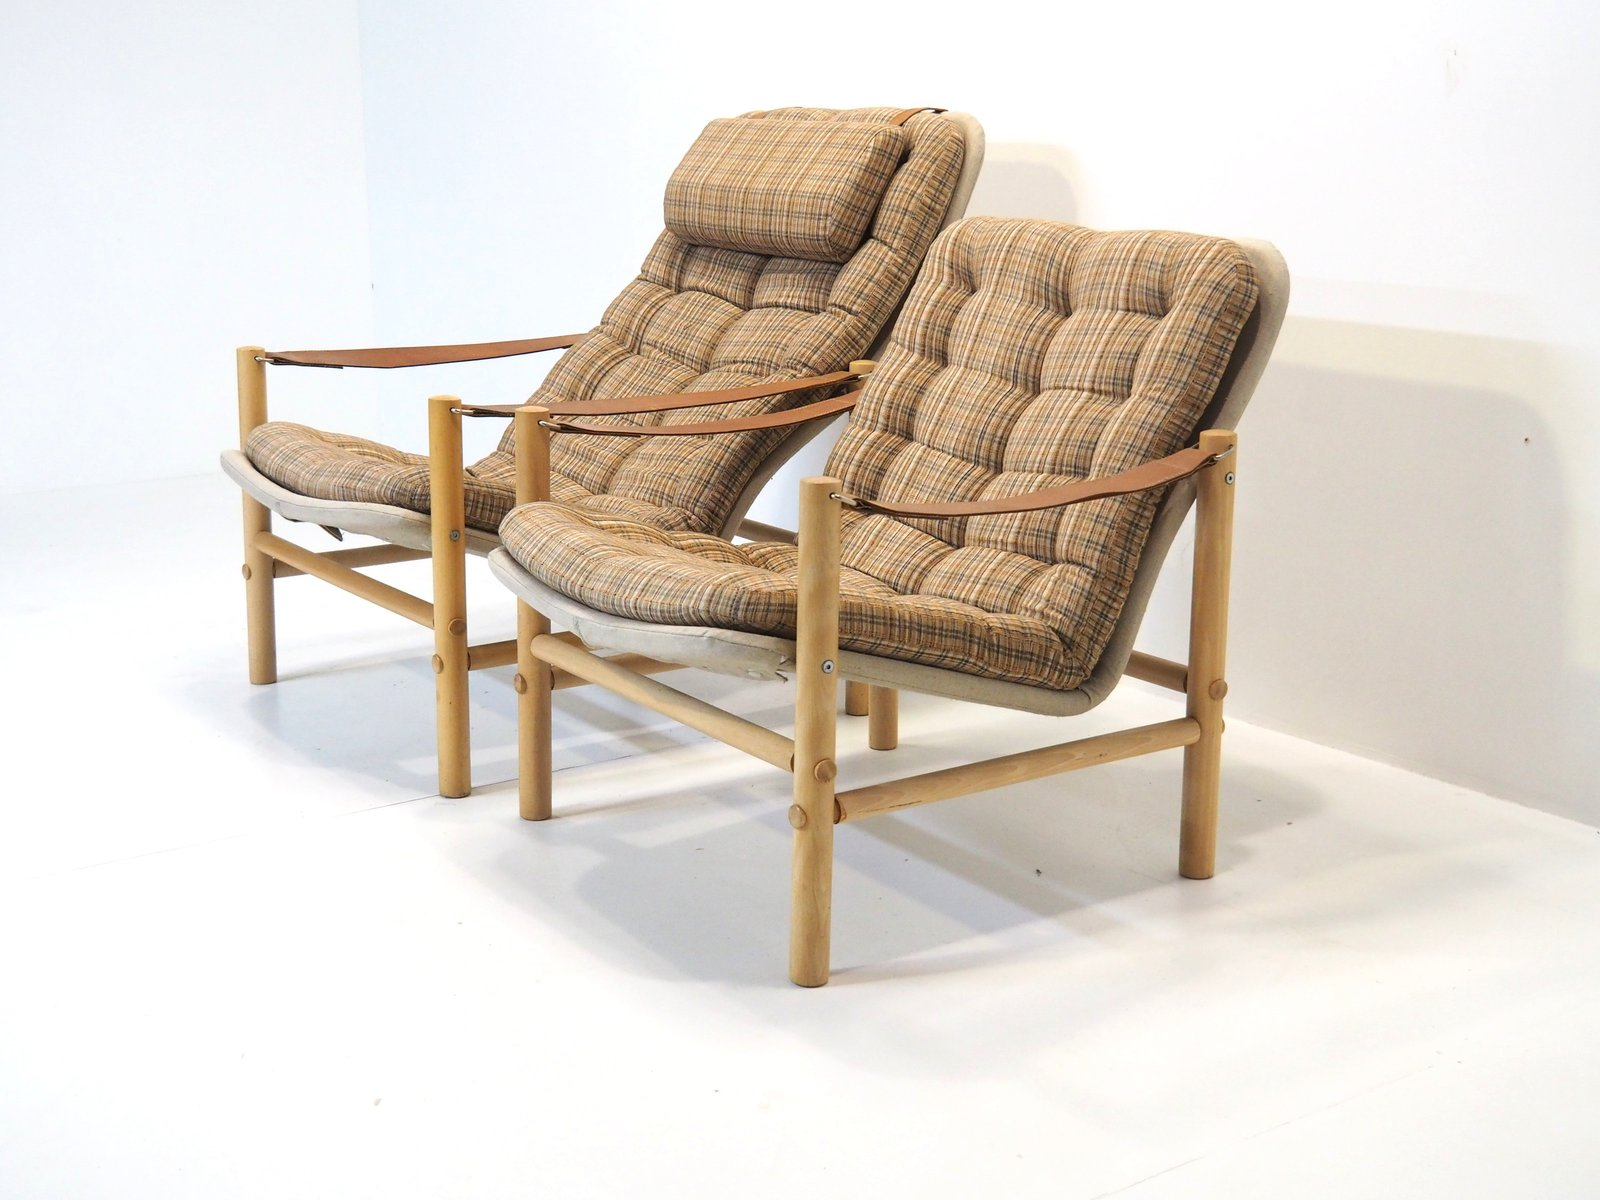 dux sofa uk cushions for sofas vancouver junker chairs by bror boije 1960s set of 2